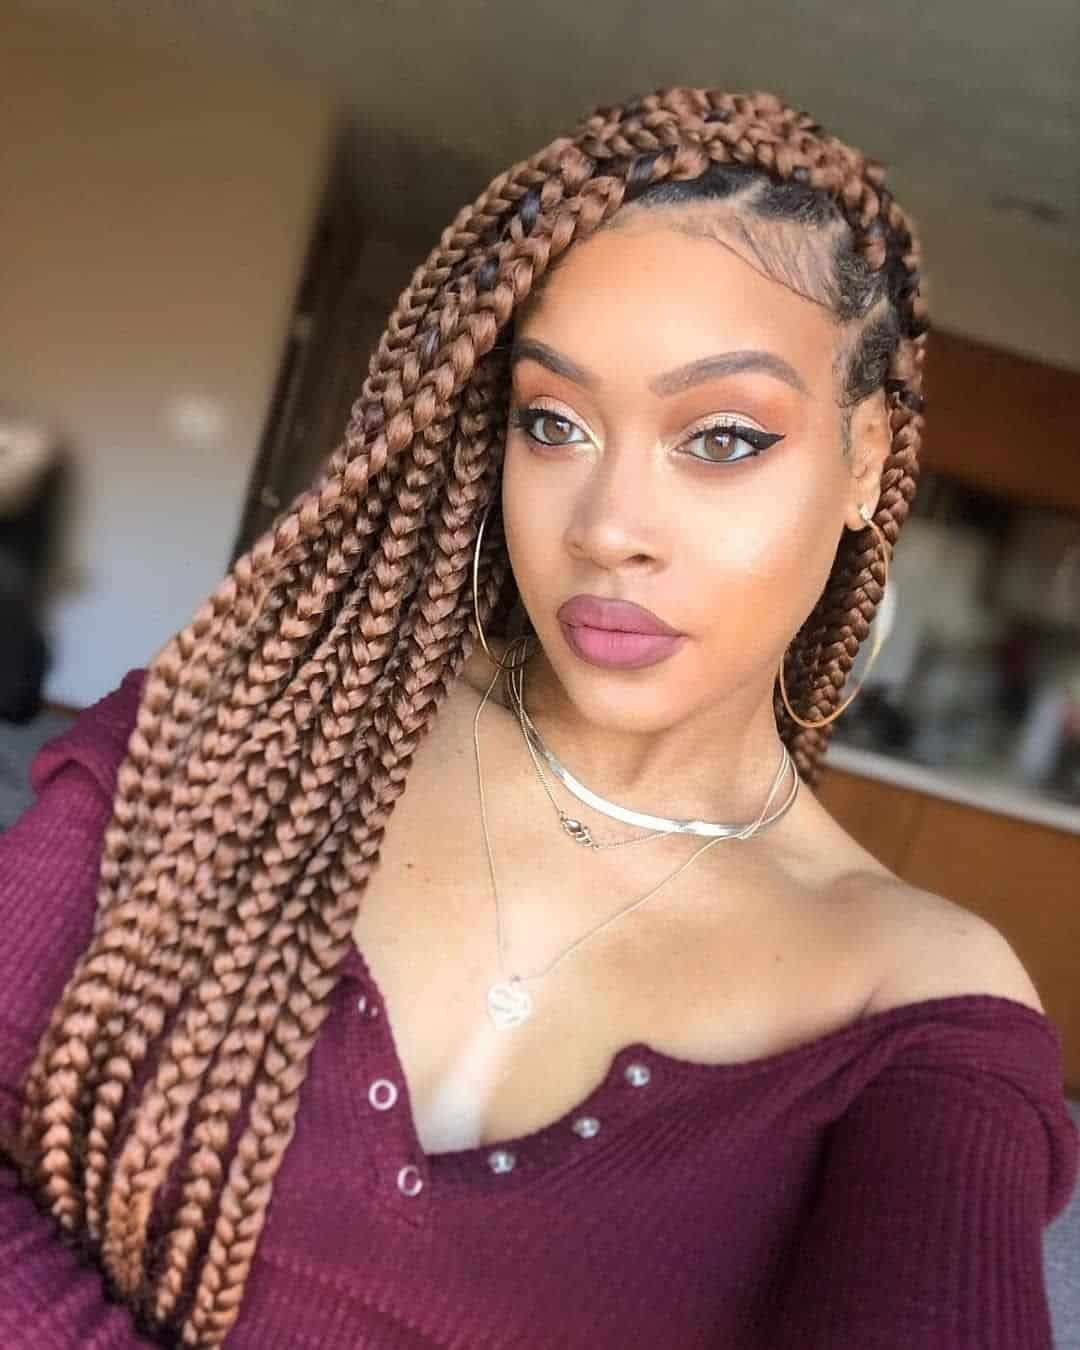 woman wearing her hair in braids and burgandy top.